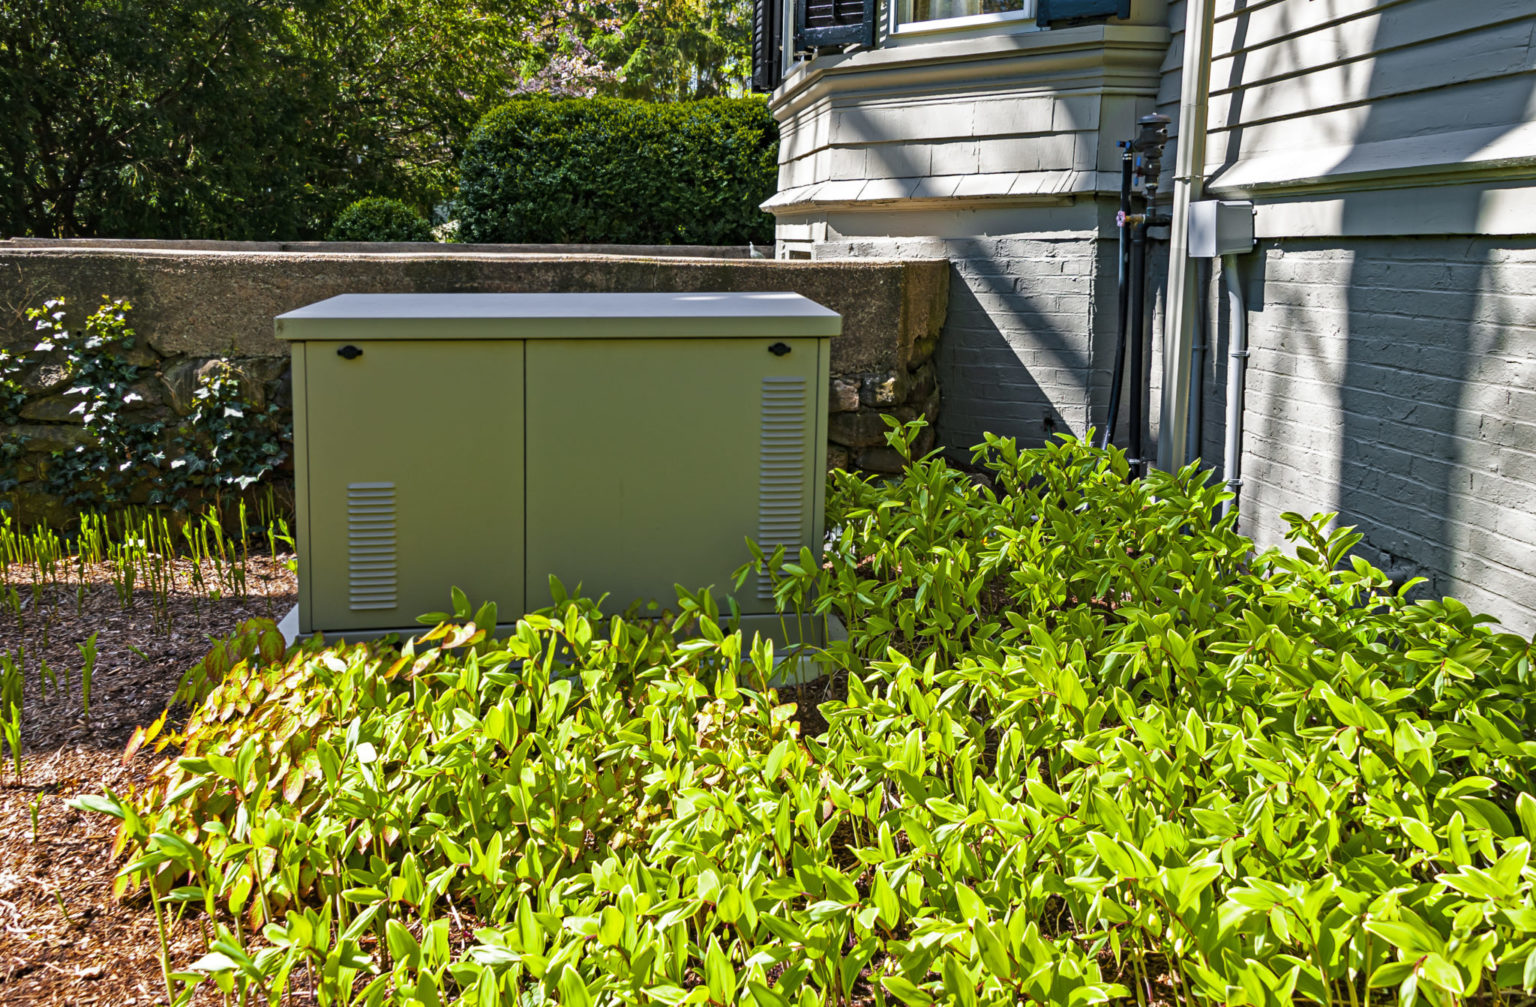 Residential backup generator outside a house